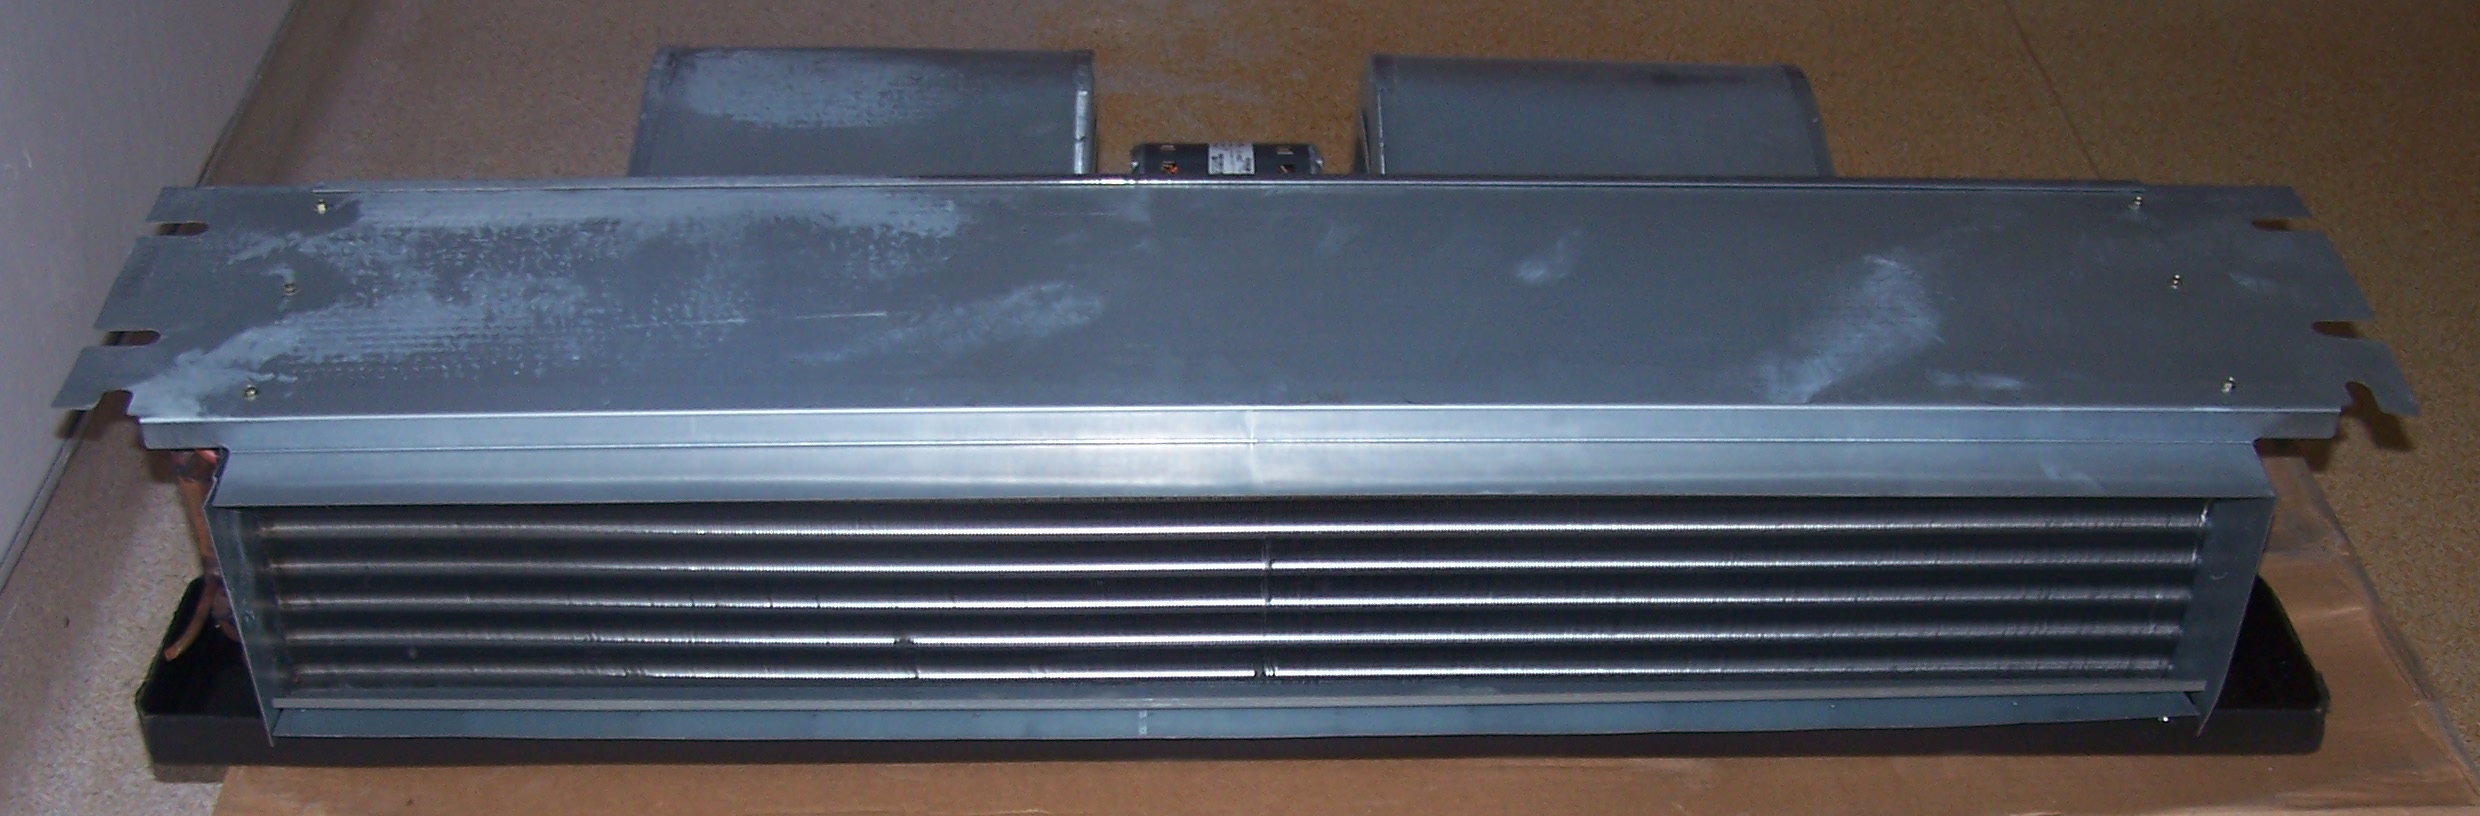 #4A6681 AC36 08C CEILING MOUNT GOODMAN 3 TON 10 SEER AIR HANDLER  Recommended 12097 Goodman Wall Mounted Air Conditioner pics with 2480x816 px on helpvideos.info - Air Conditioners, Air Coolers and more